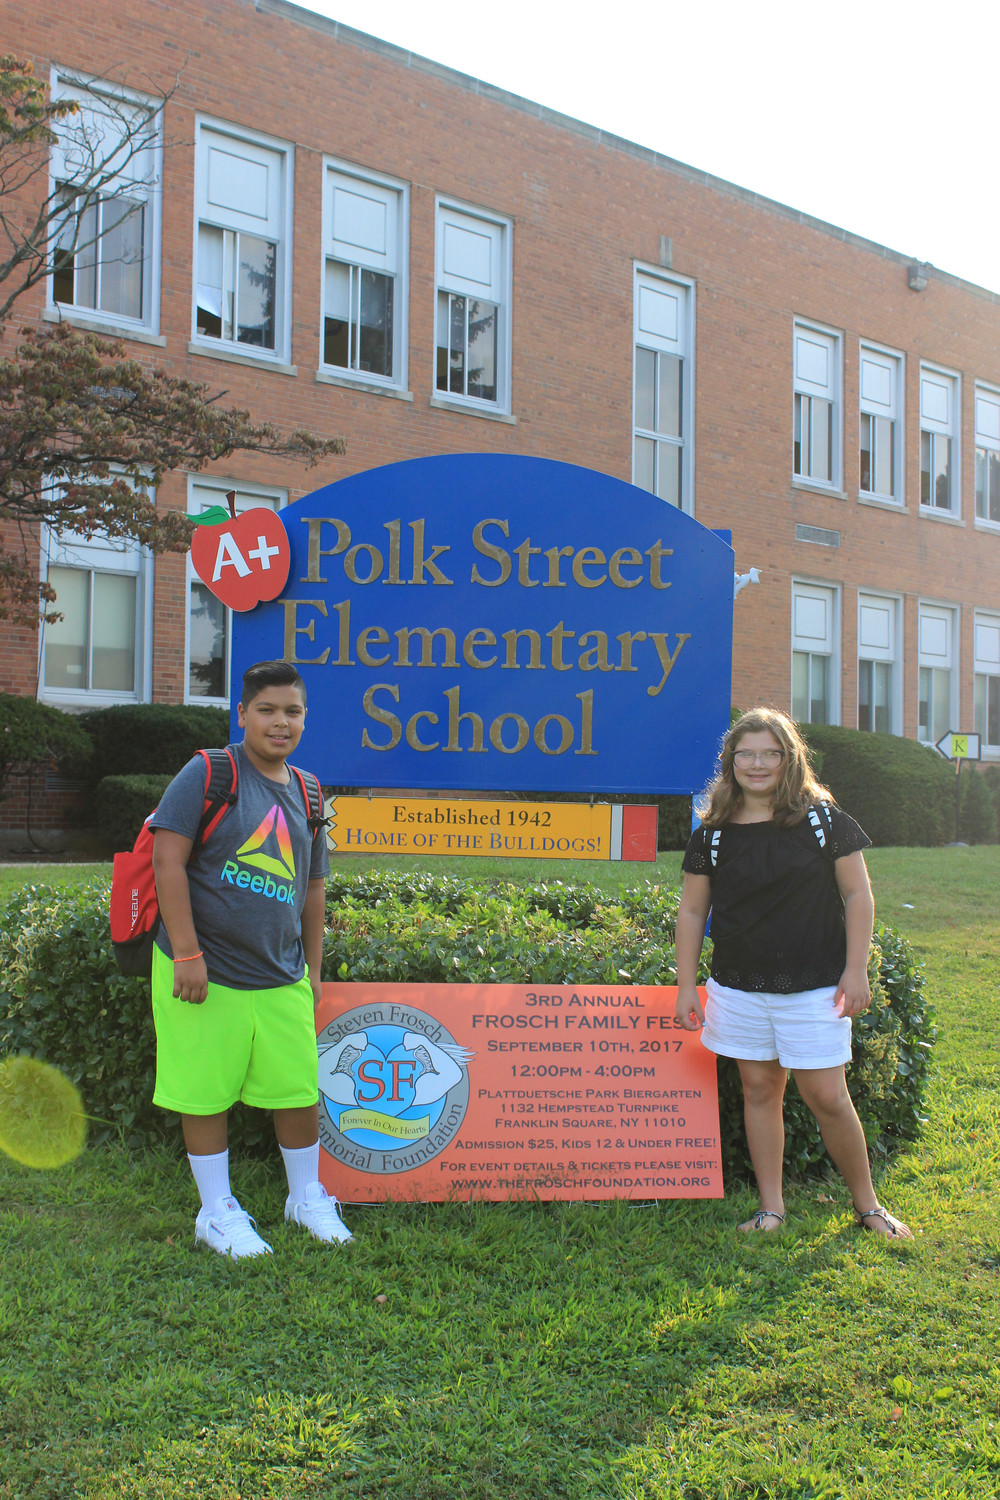 John and Sofia Solomon, in sixth and fifth grade, respectively, were ready for the new school year to begin.